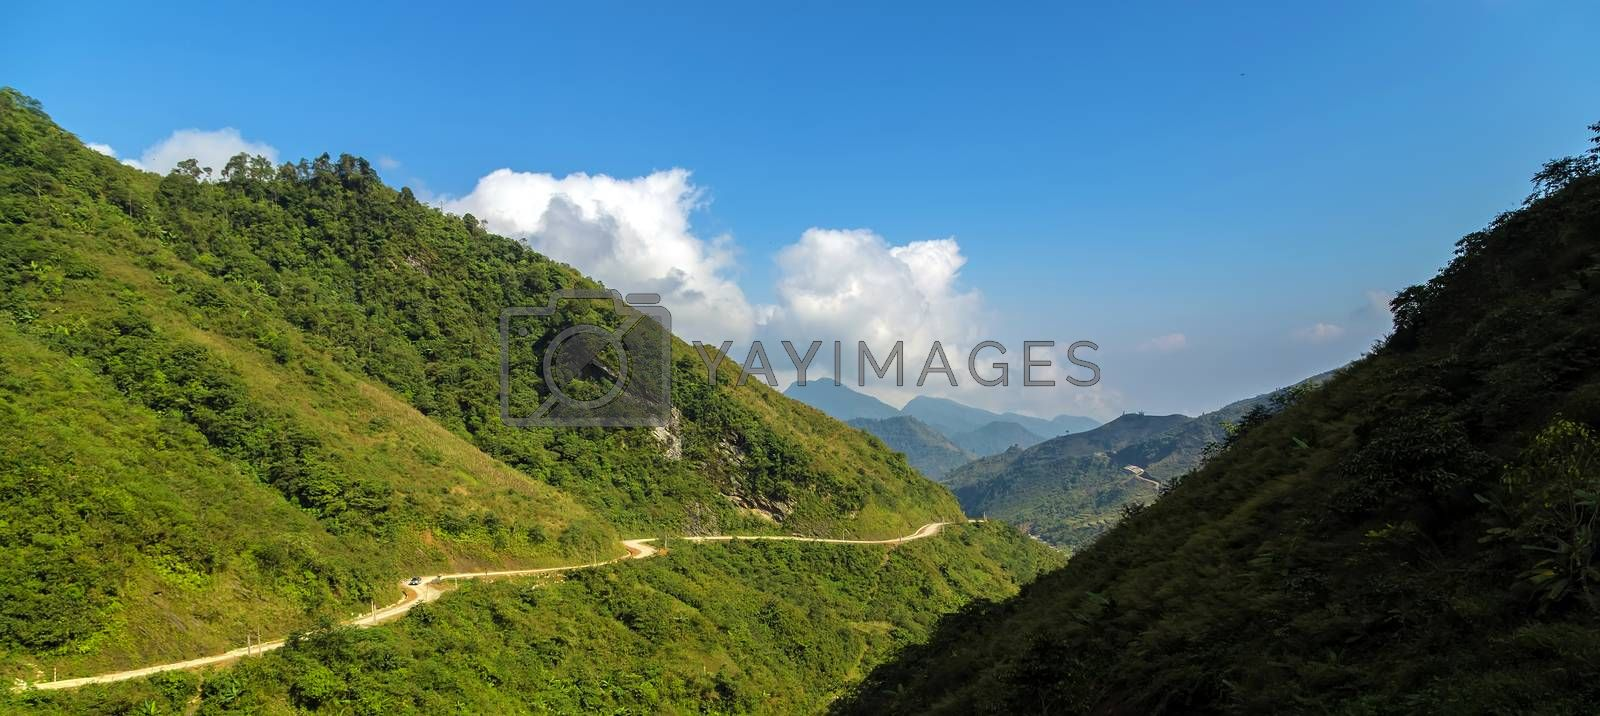 Curved way countryside mountains landscape summer with cloudy sky country road